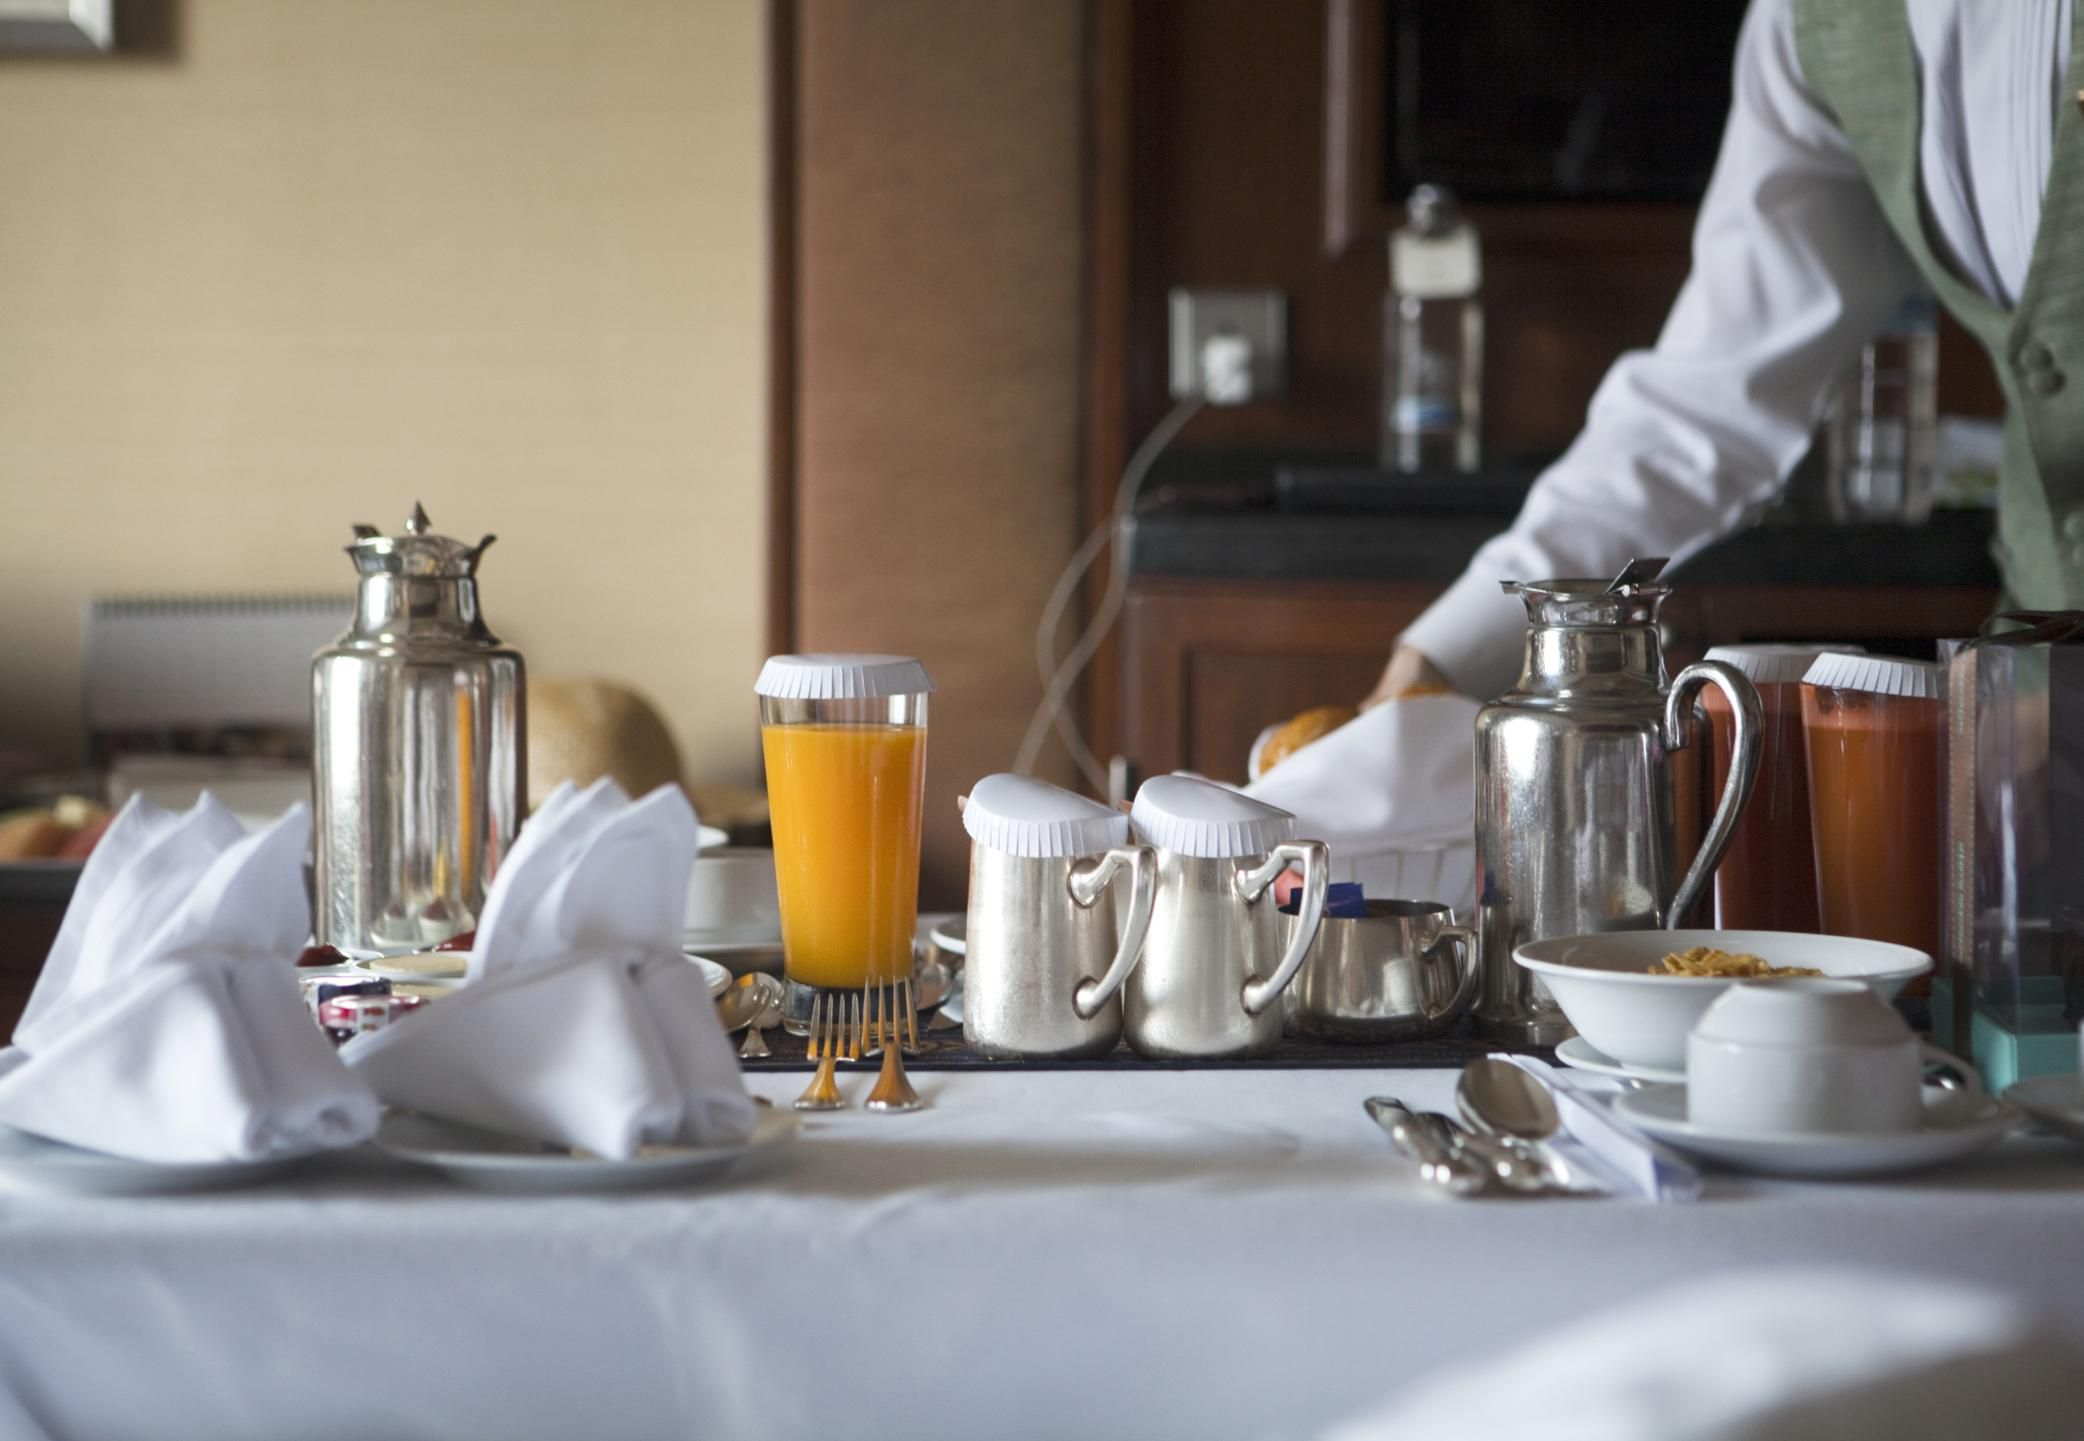 What Is the European Plan, or EP, for Hotel Dining?